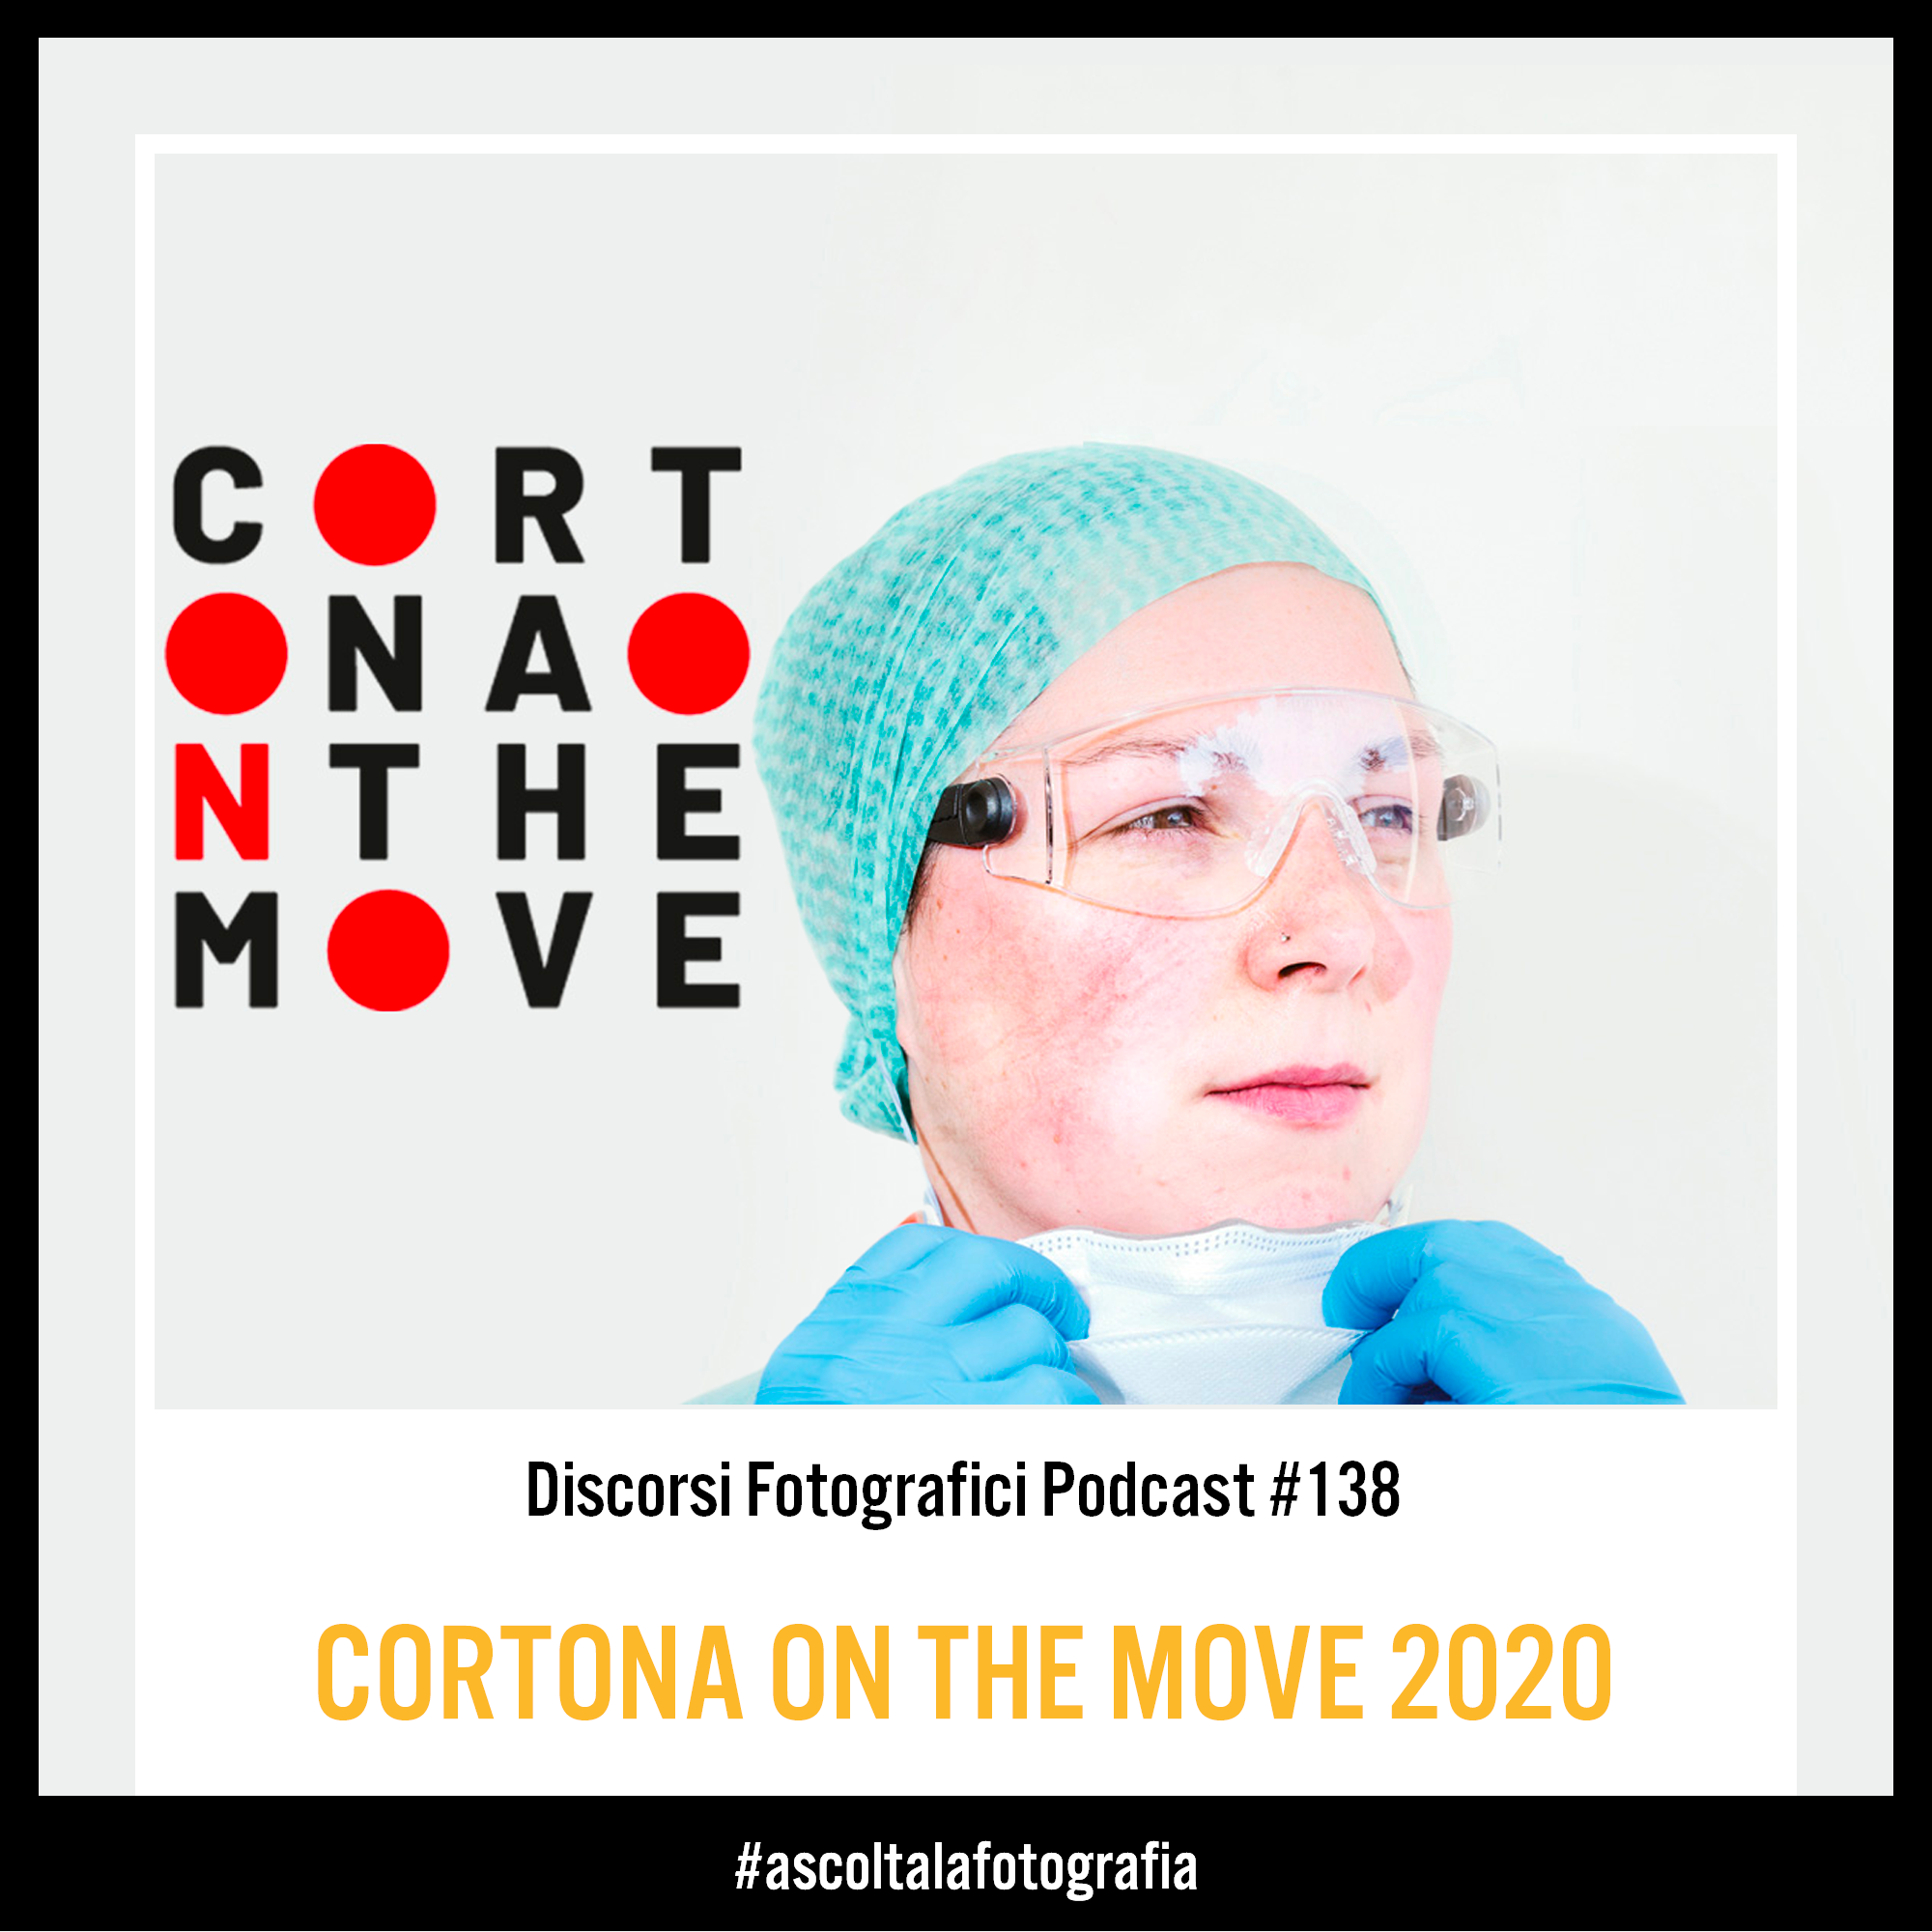 podcast Cortona on the move 2020